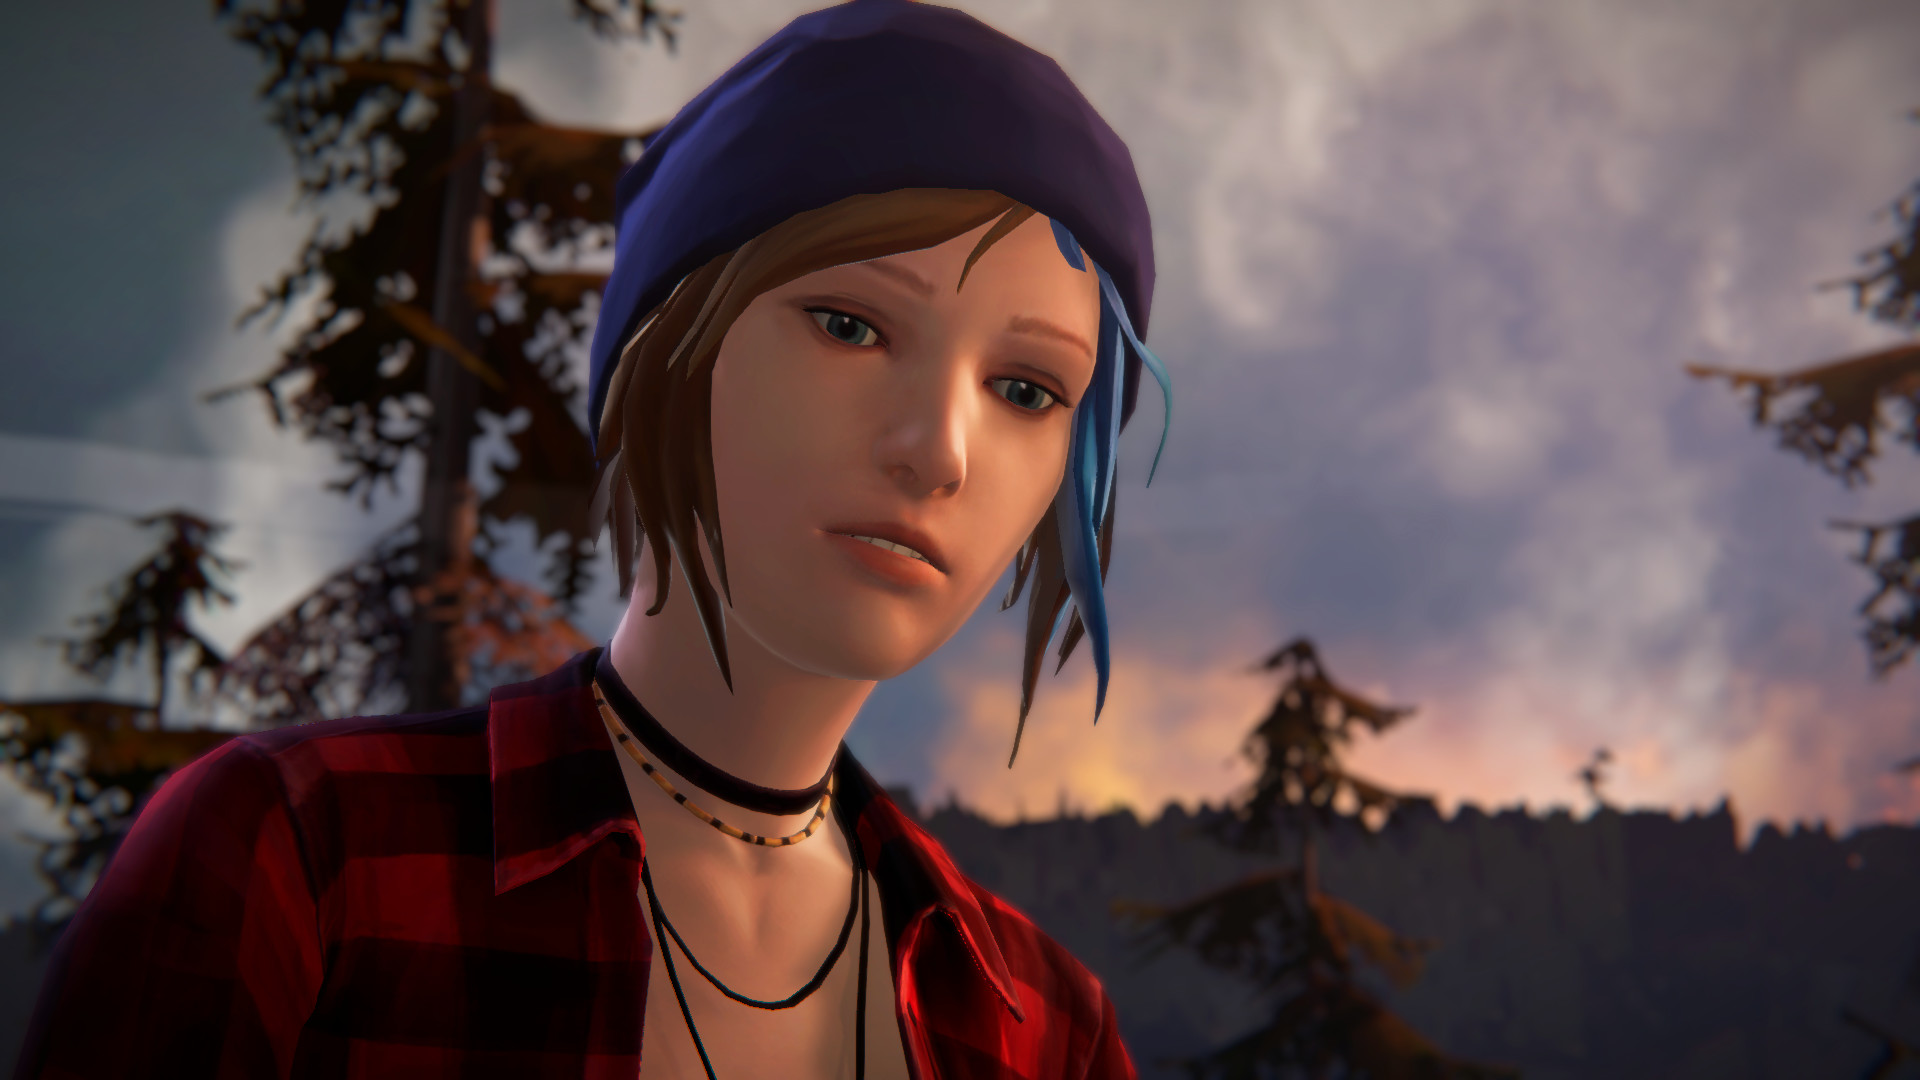 Res: 1920x1080, Computerspiele - Life is Strange: Before The Storm Blue Hair Chloe Price  Wallpaper